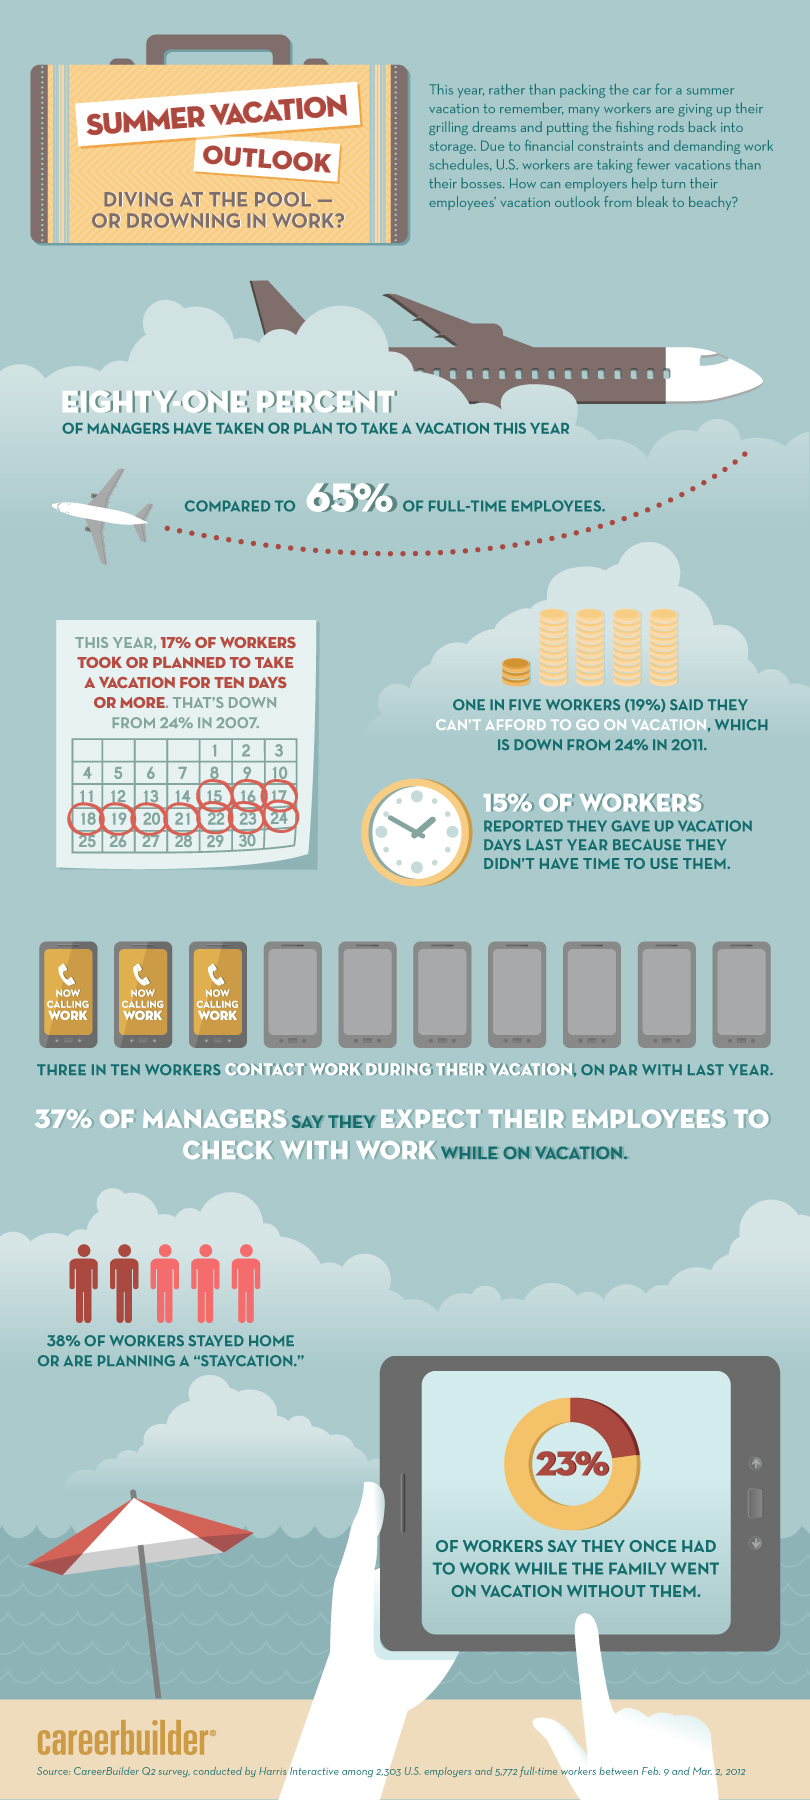 Summer-Vacation-Outlook-2012-infographic